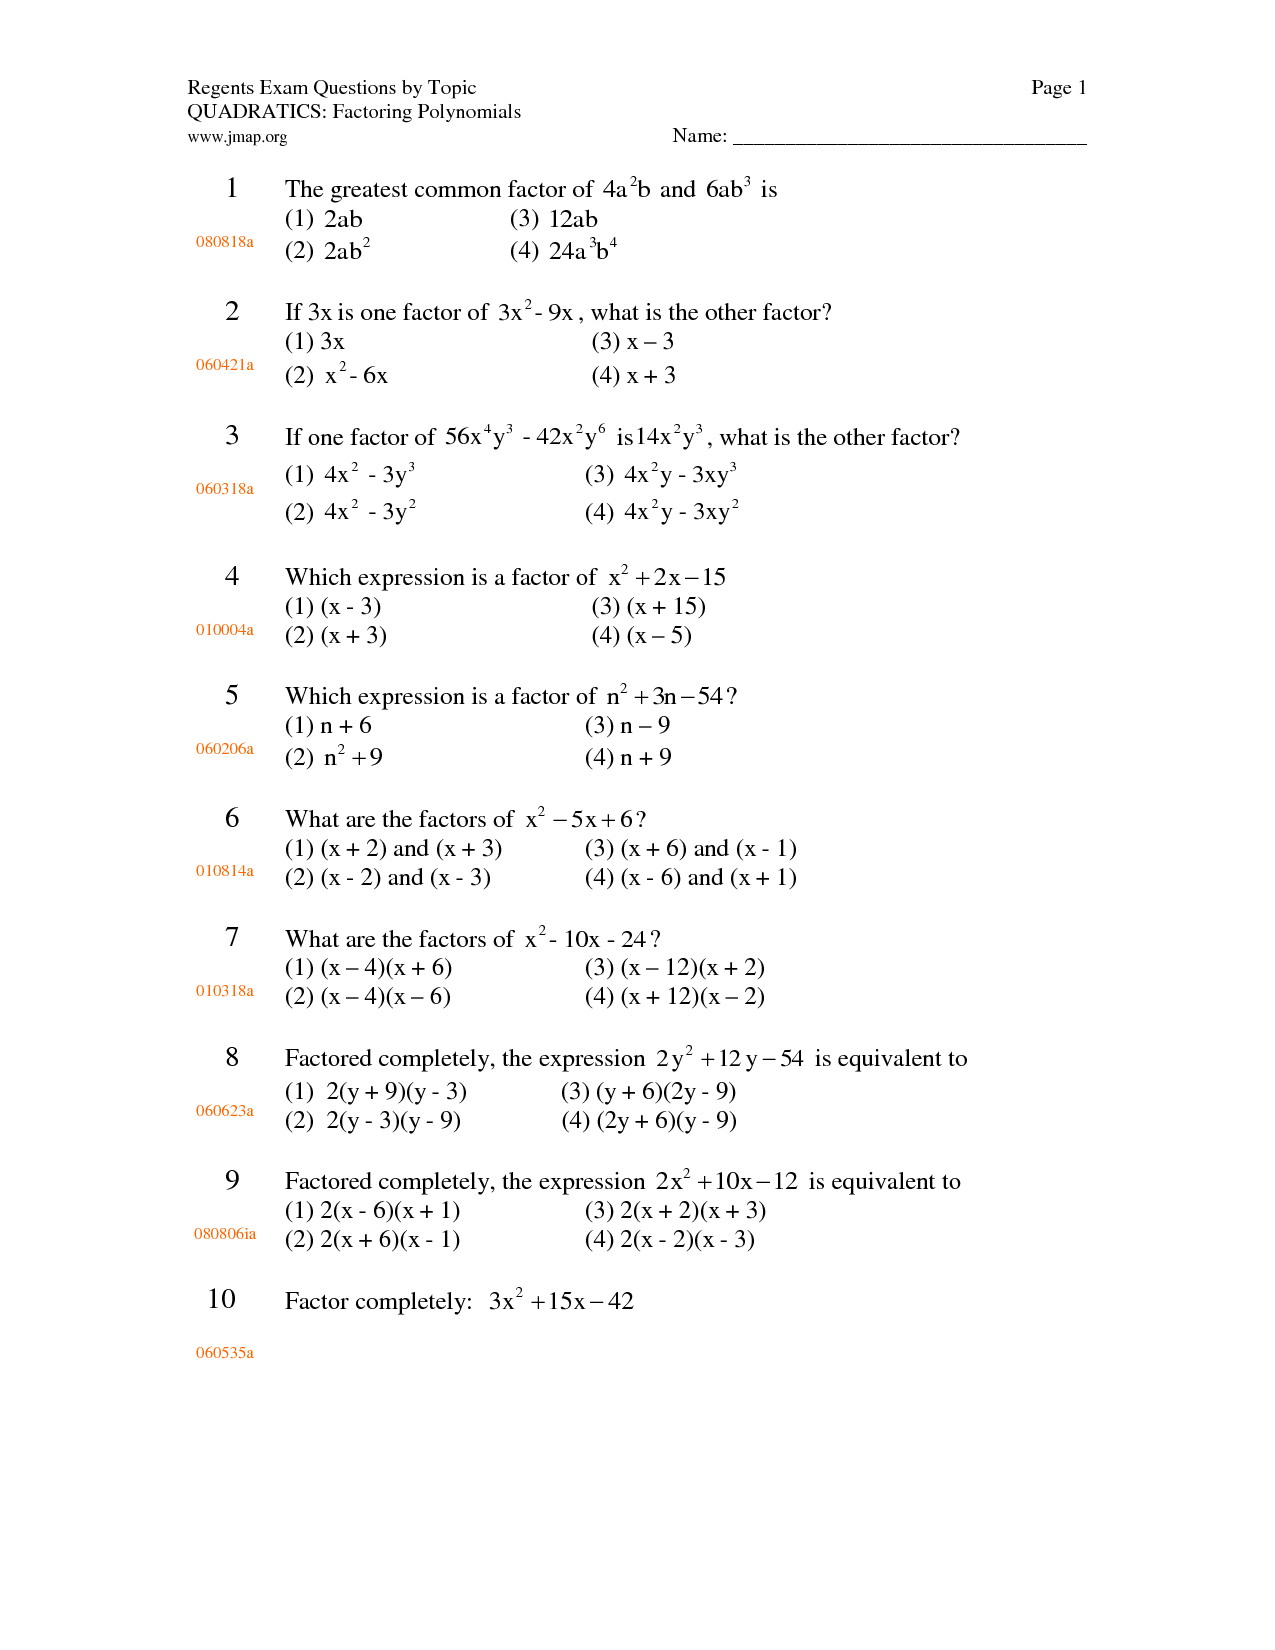 Factoring Polynomial Worksheet